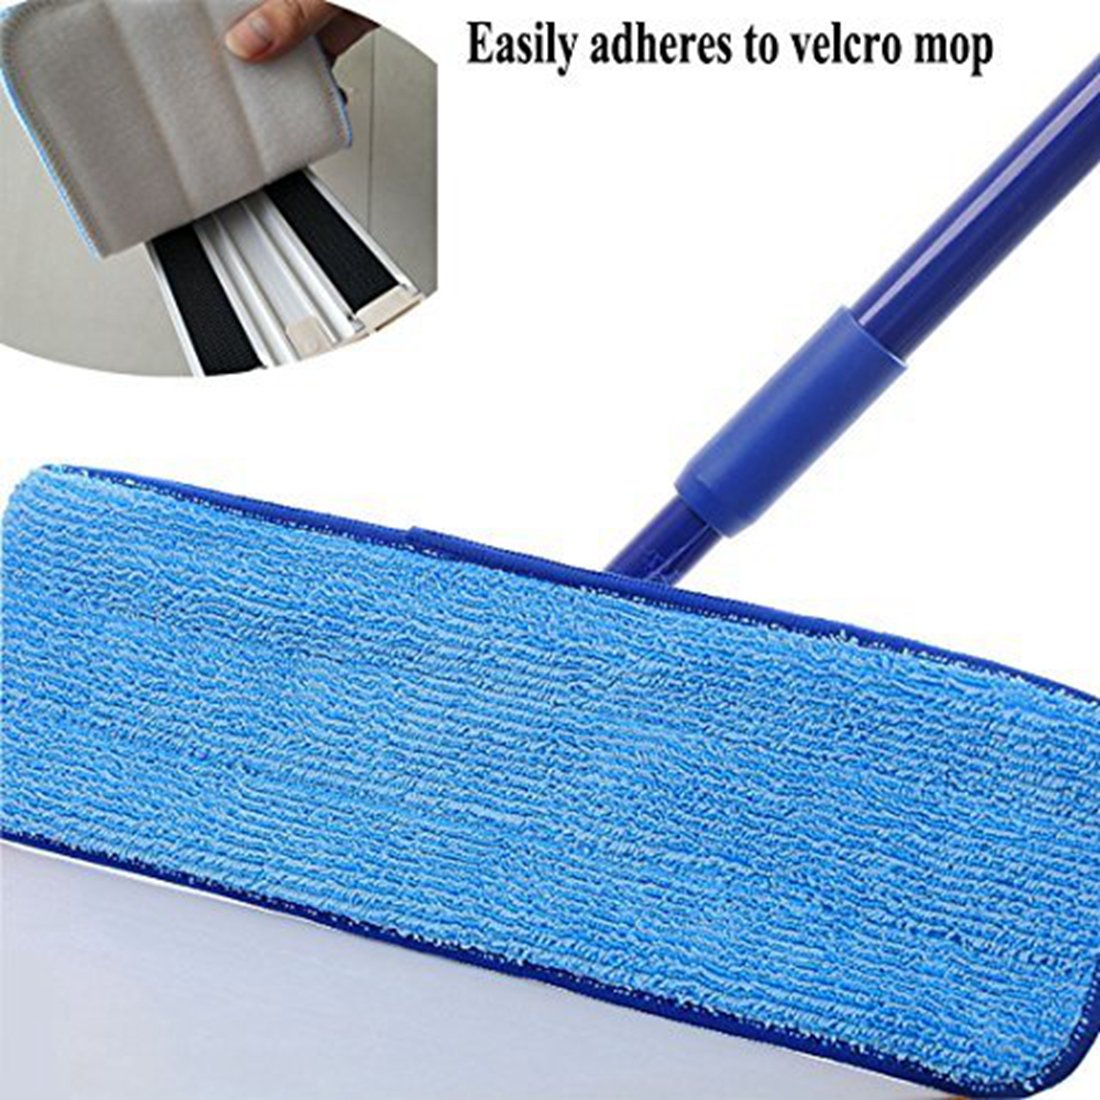 haoun Laminate Hardwood Floor Mop Microfiber Cleaning Pad Replacement Washable (Pack of 10) by Haoun (Image #3)